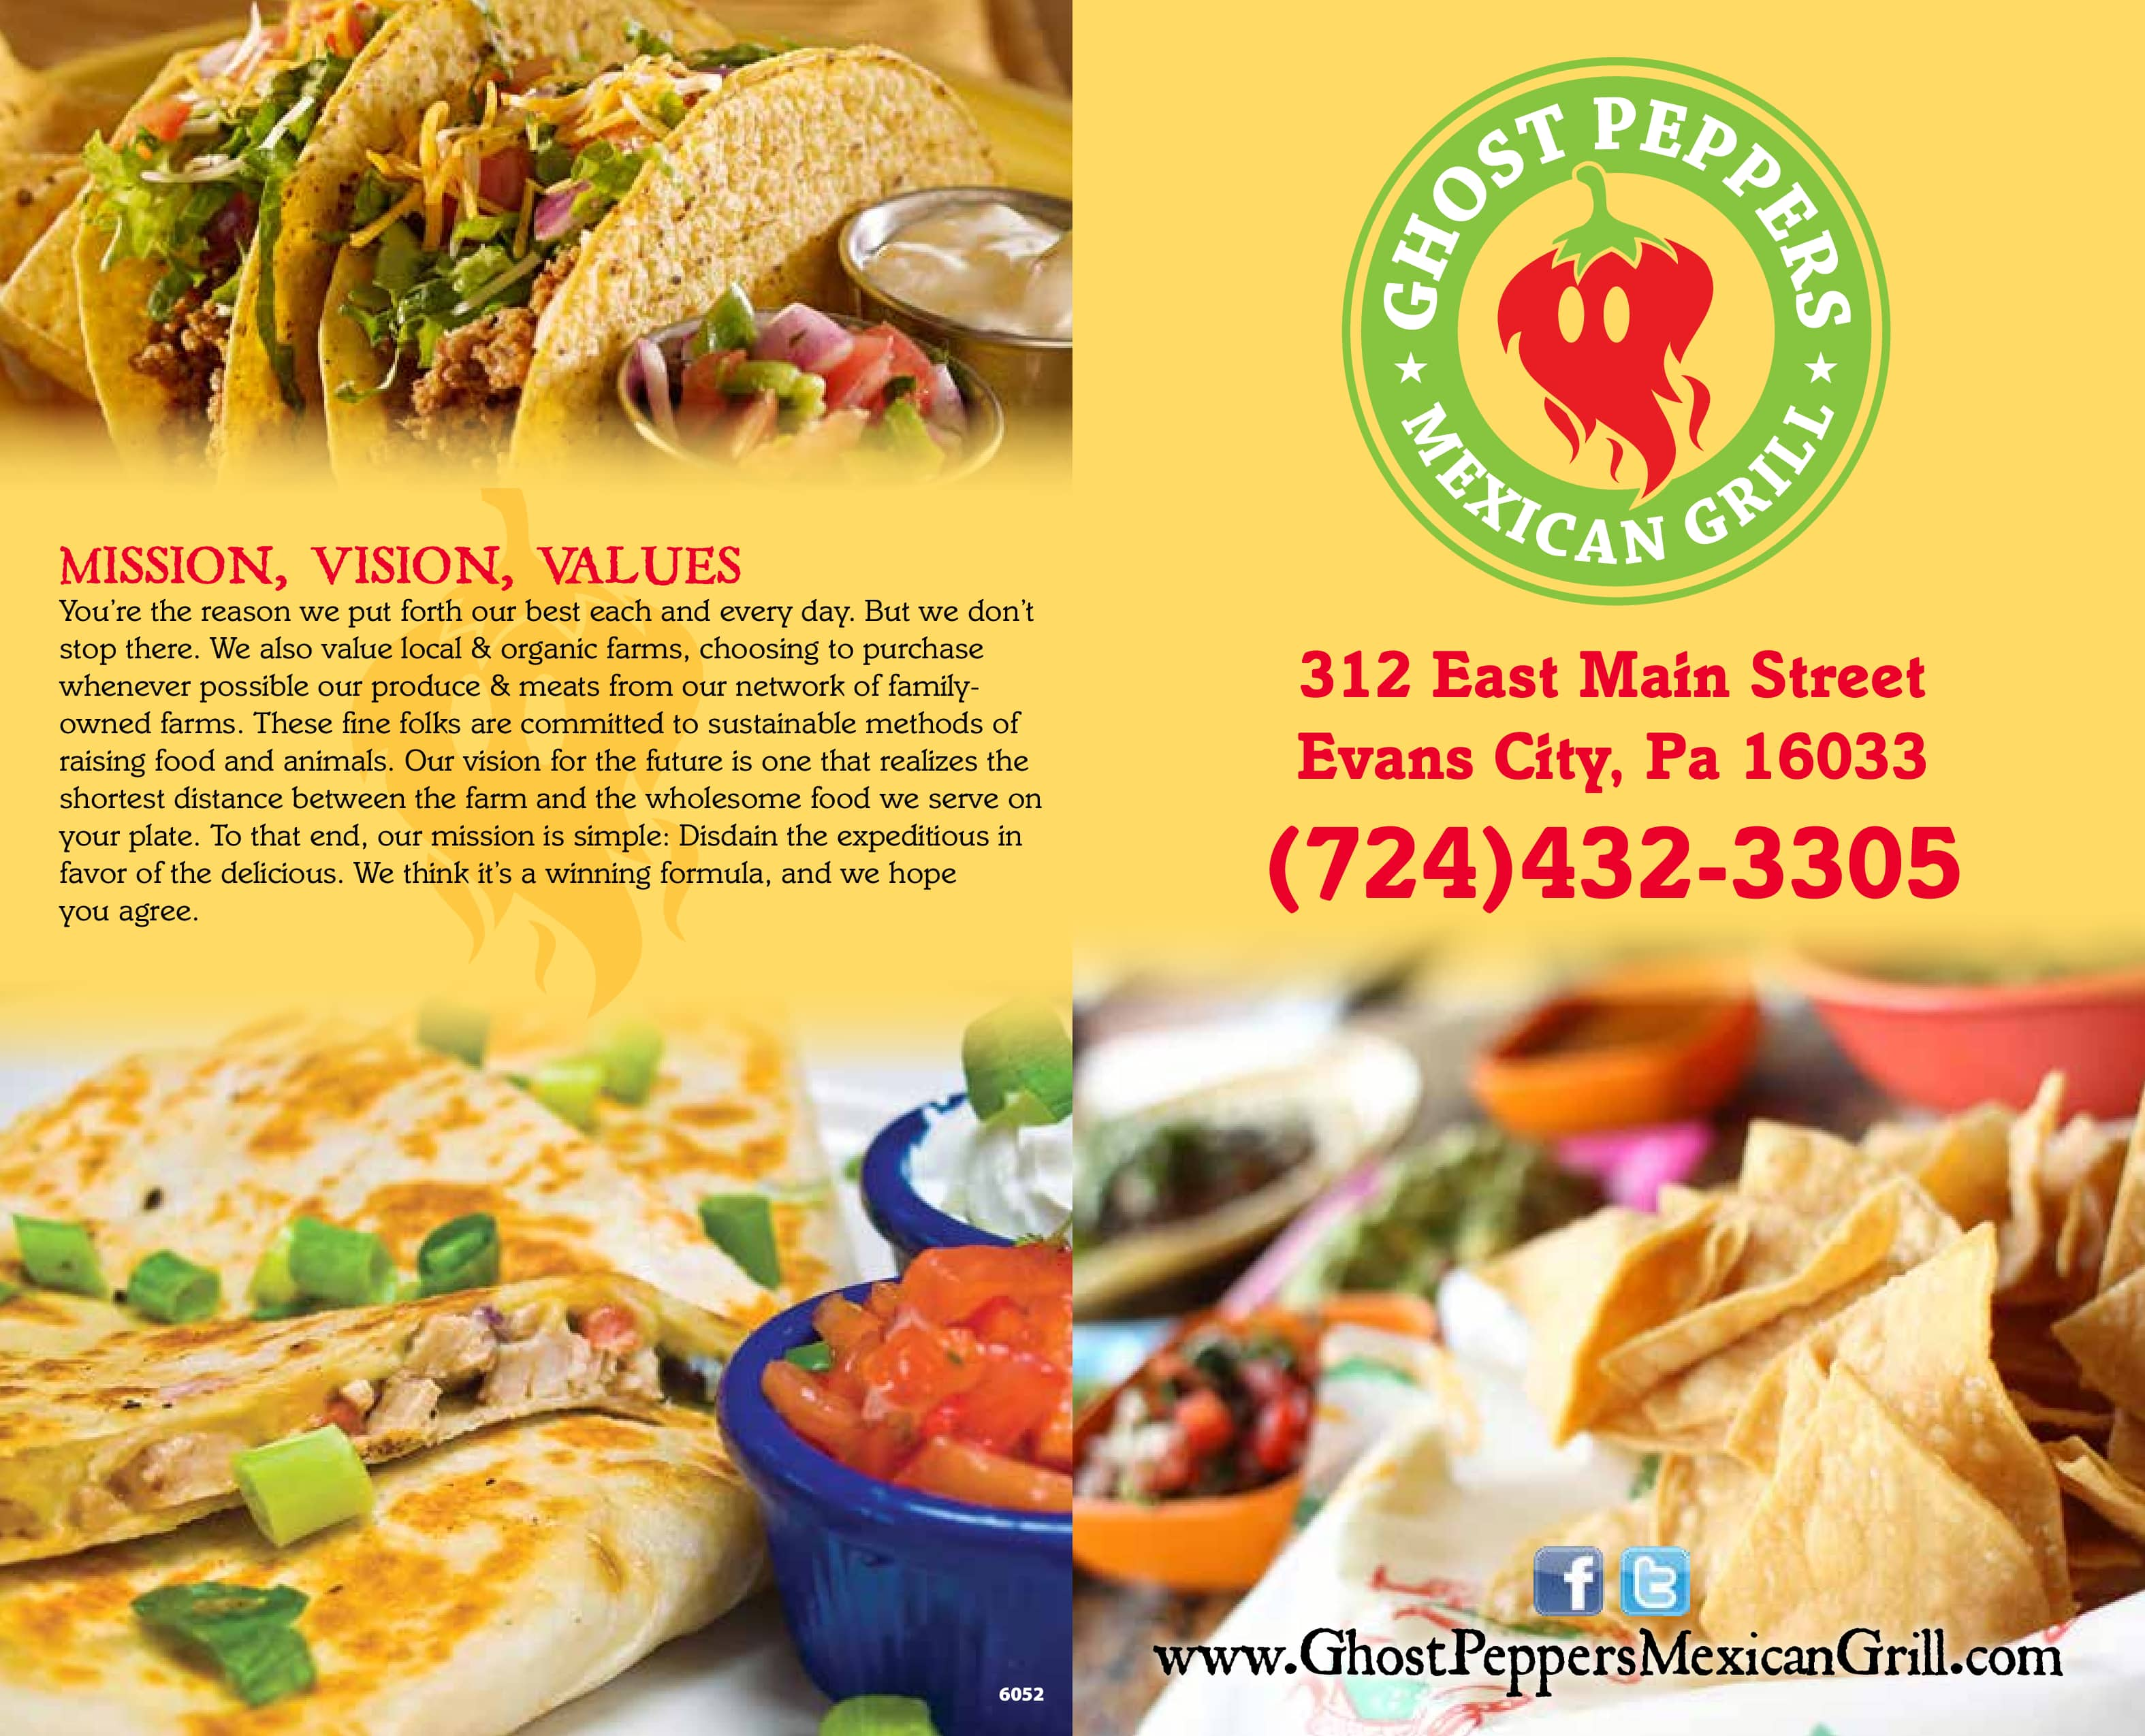 Menu At Ghost Peppers Mexican Grill Restaurant Evans City